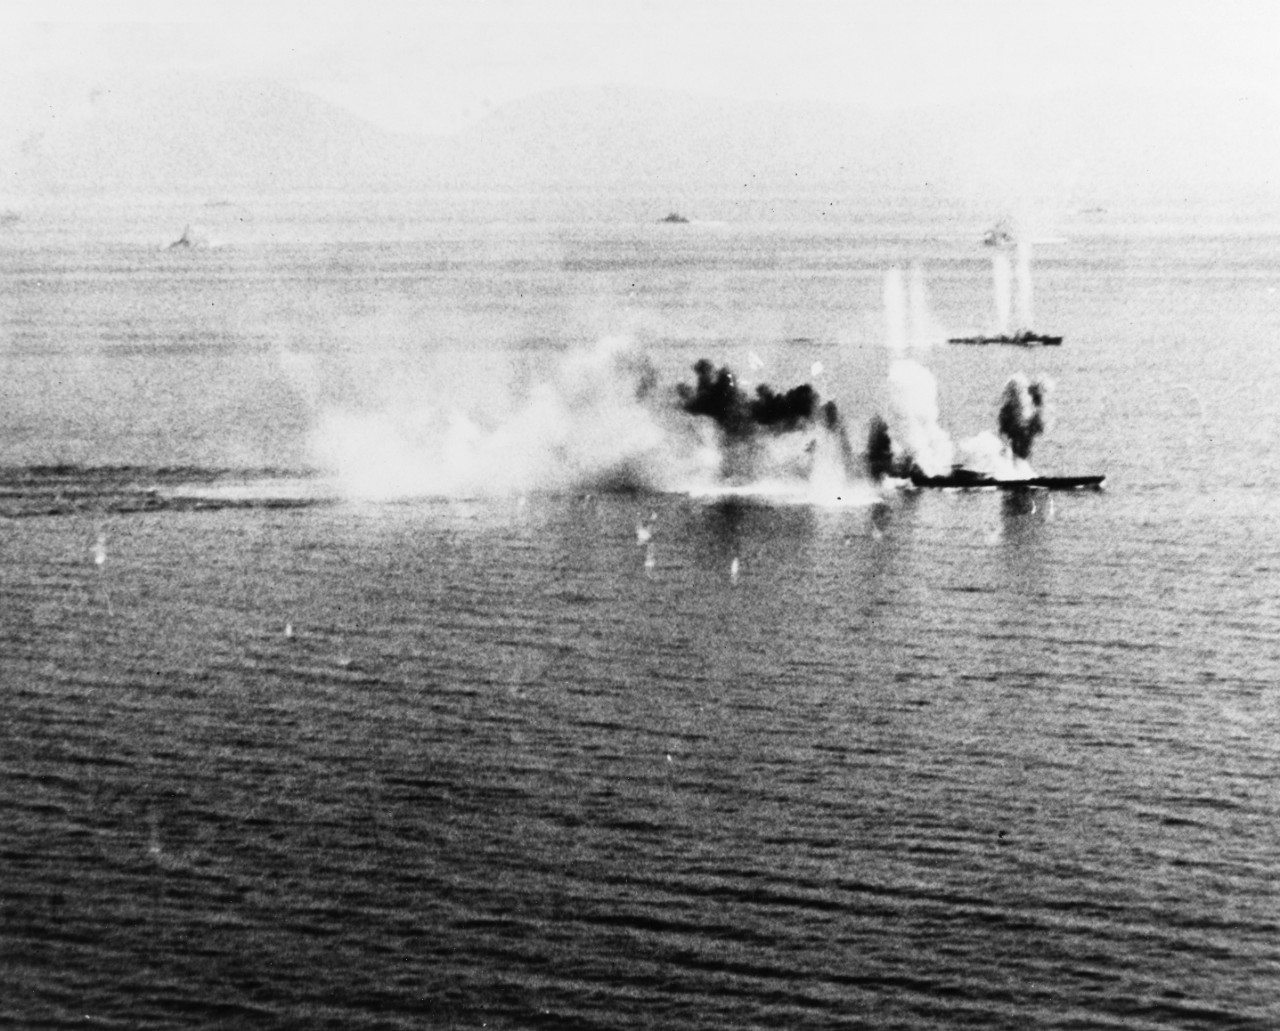 Japanese battleship Musashi under heavy attack during the Battle of the Sibuyan Sea, 24 October 1944.